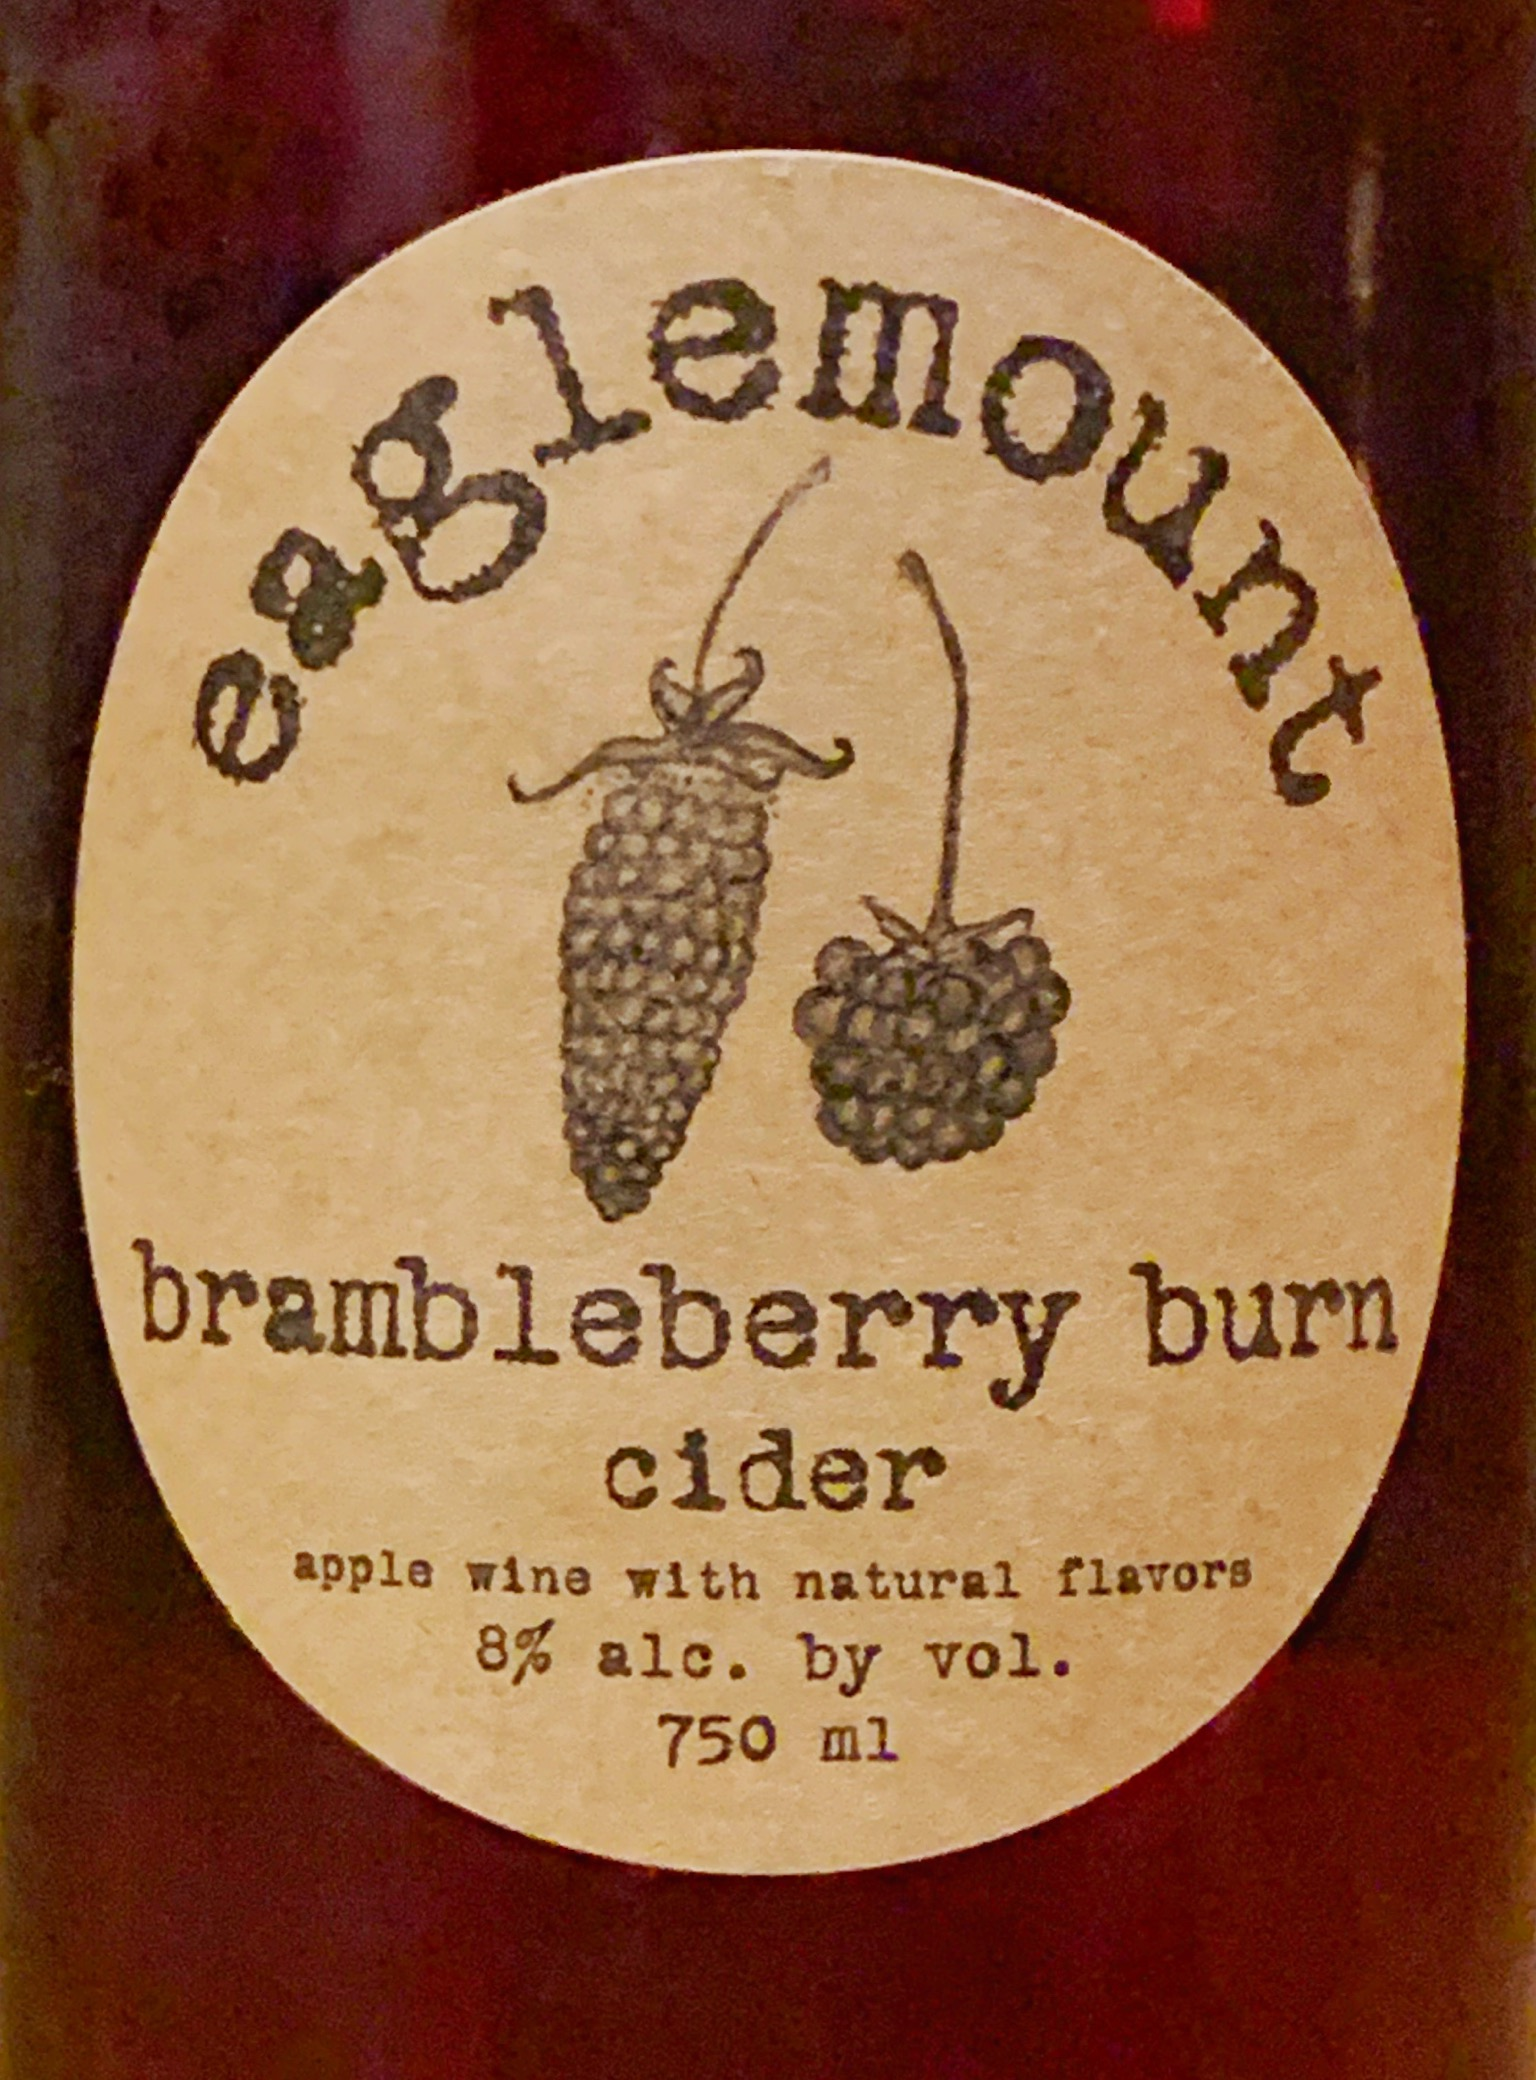 Brambleberry Burn